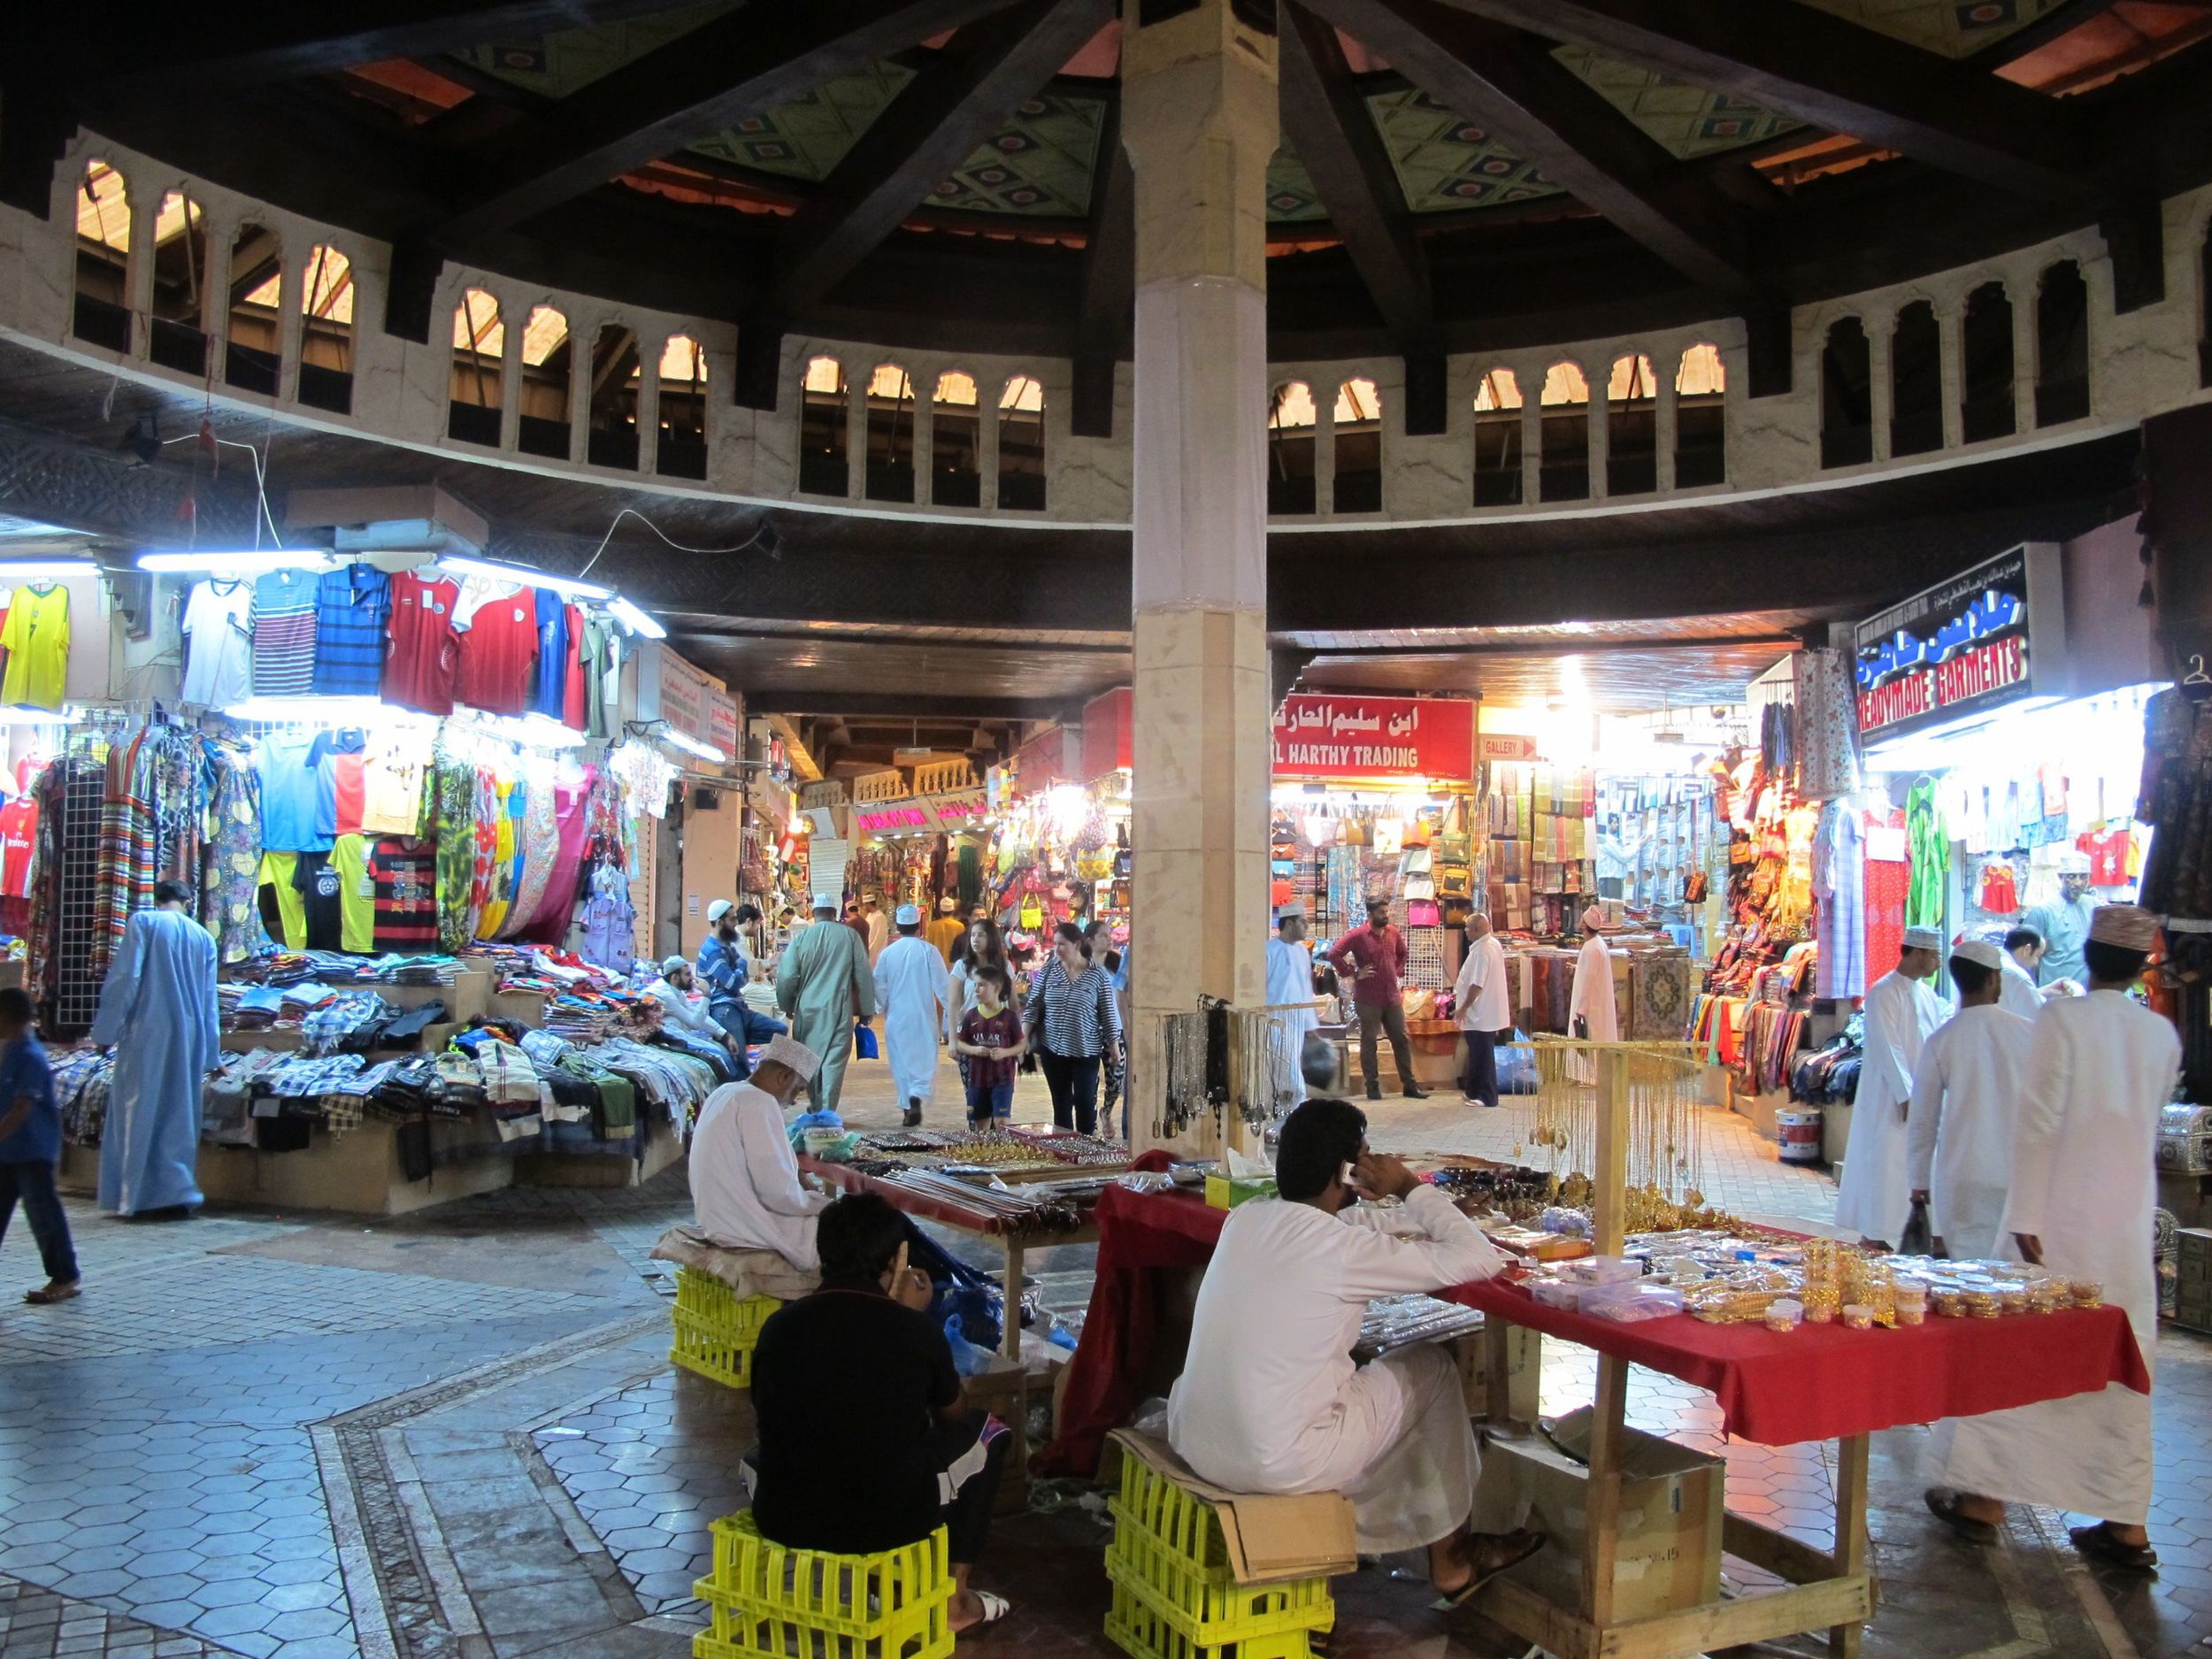 Muscat's souq. Note the timbers and decorative painting on the ceiling.